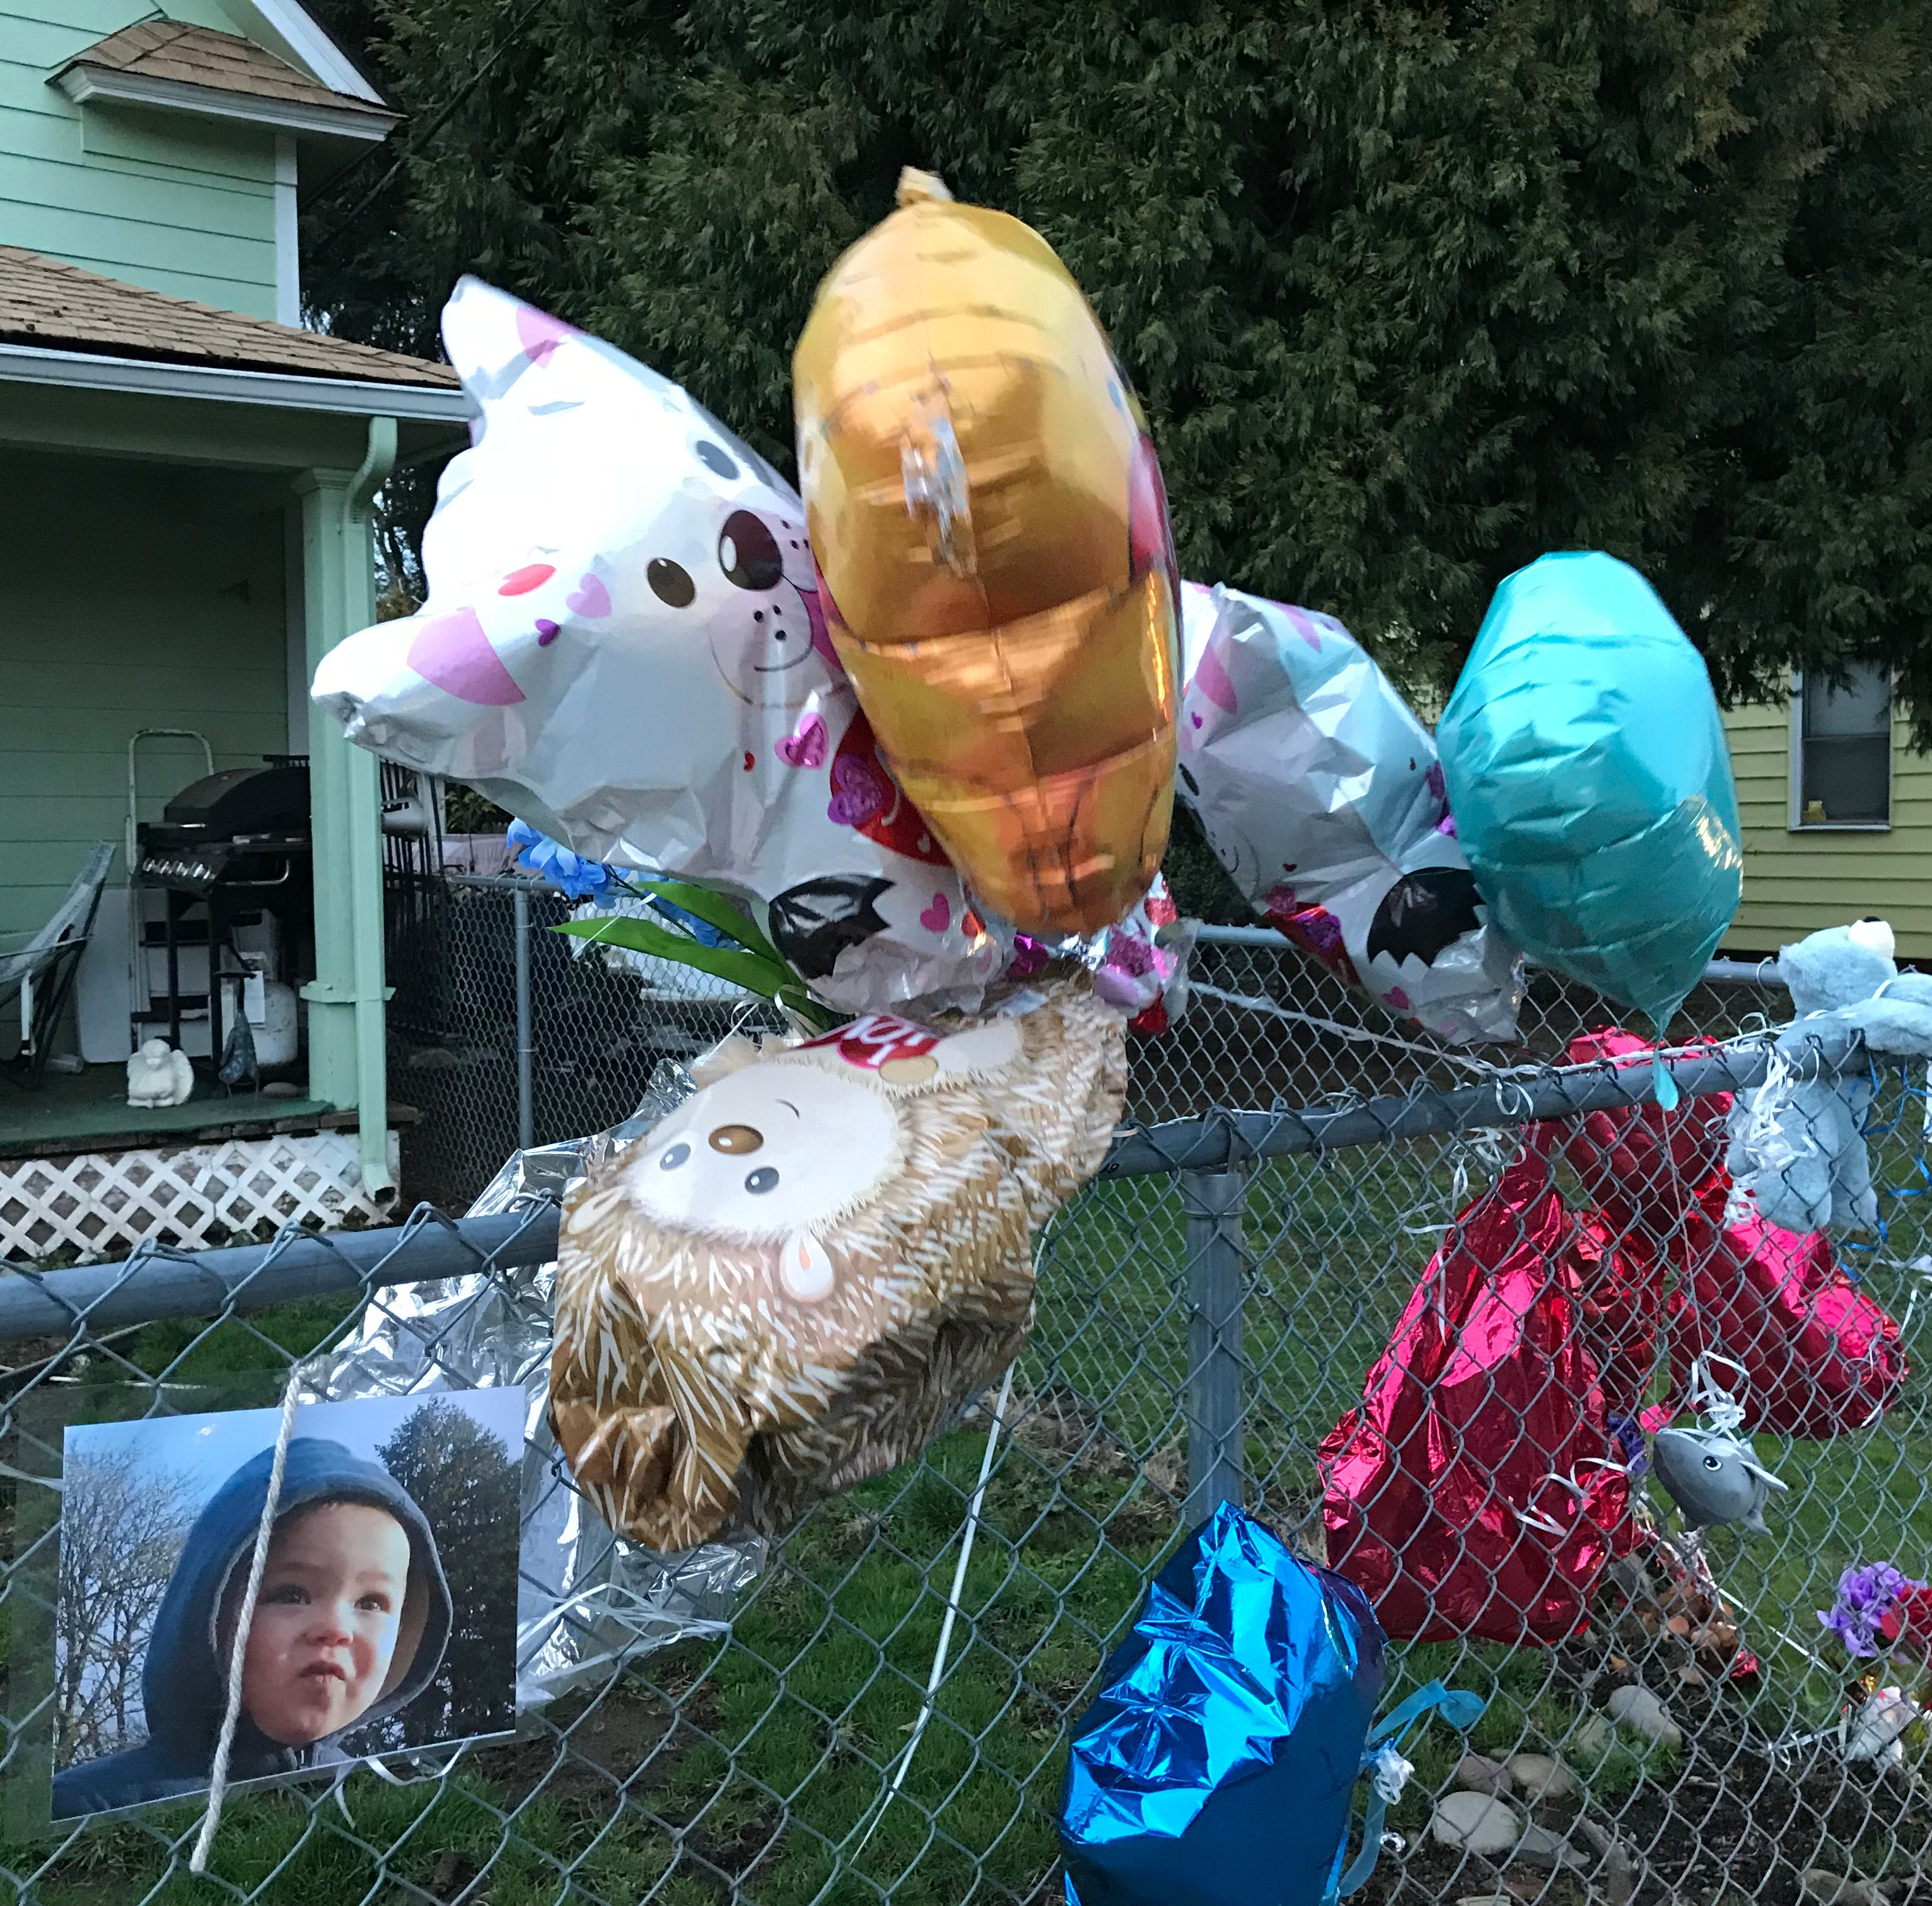 Stayton mom faces manslaughter, neglect charges after son's house fire death